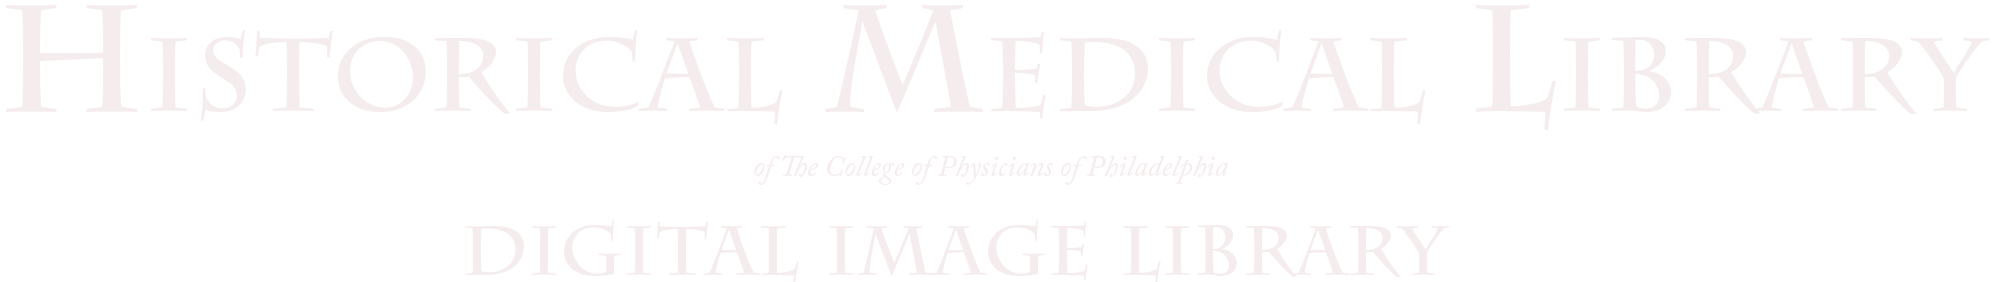 The College of Physicians of Philadelphia Digital Library